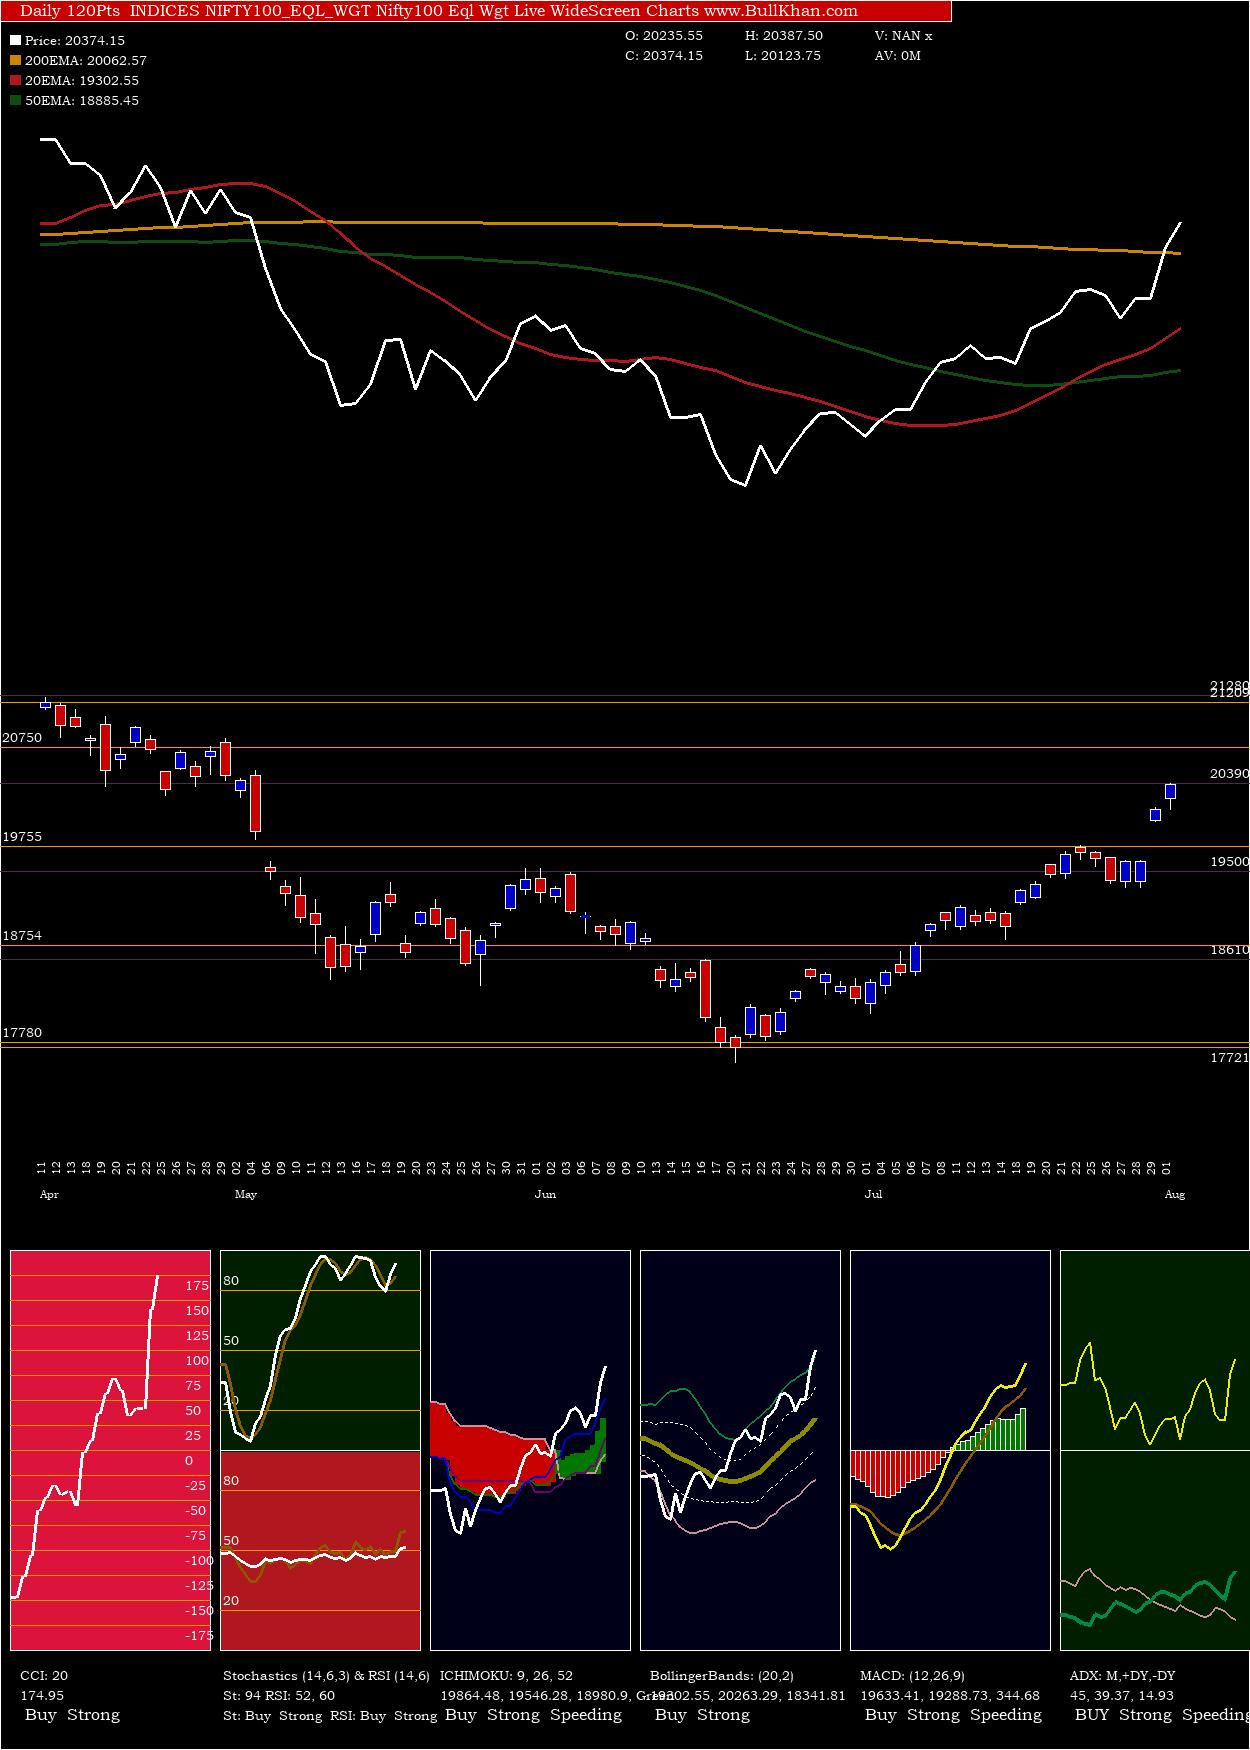 Nifty100 Eql charts and indicators